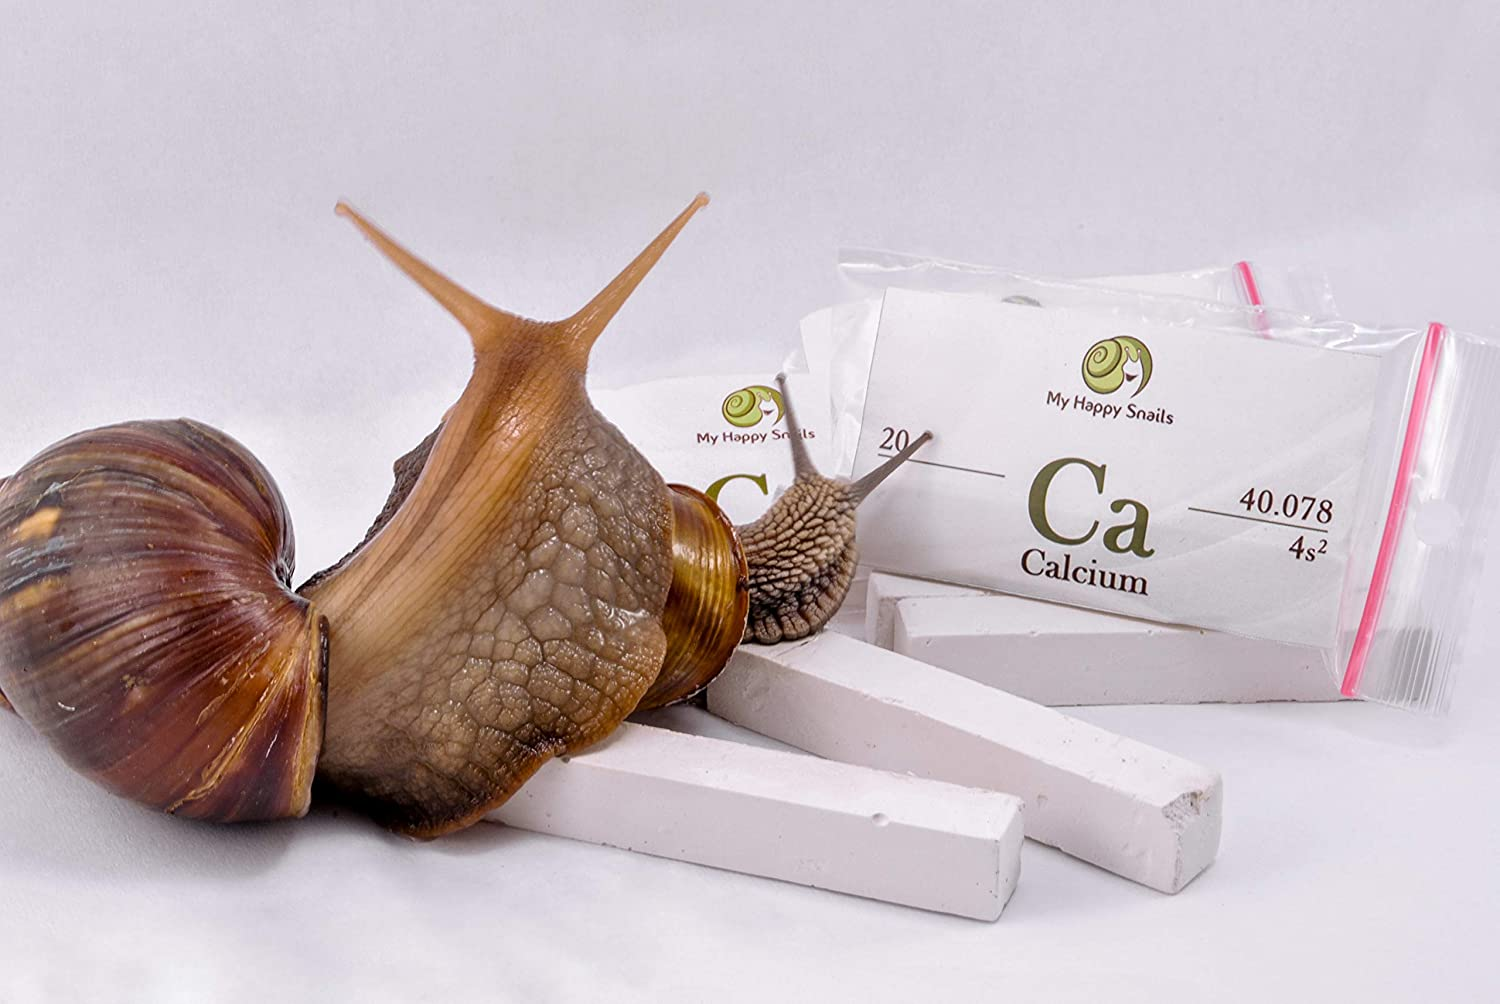 Organic Calcium for Pet Snails (3 Sticks) - for All Types of Land Snails : Garden Snail, Giant African Snail, Helix Aspersa, Pomatia etc